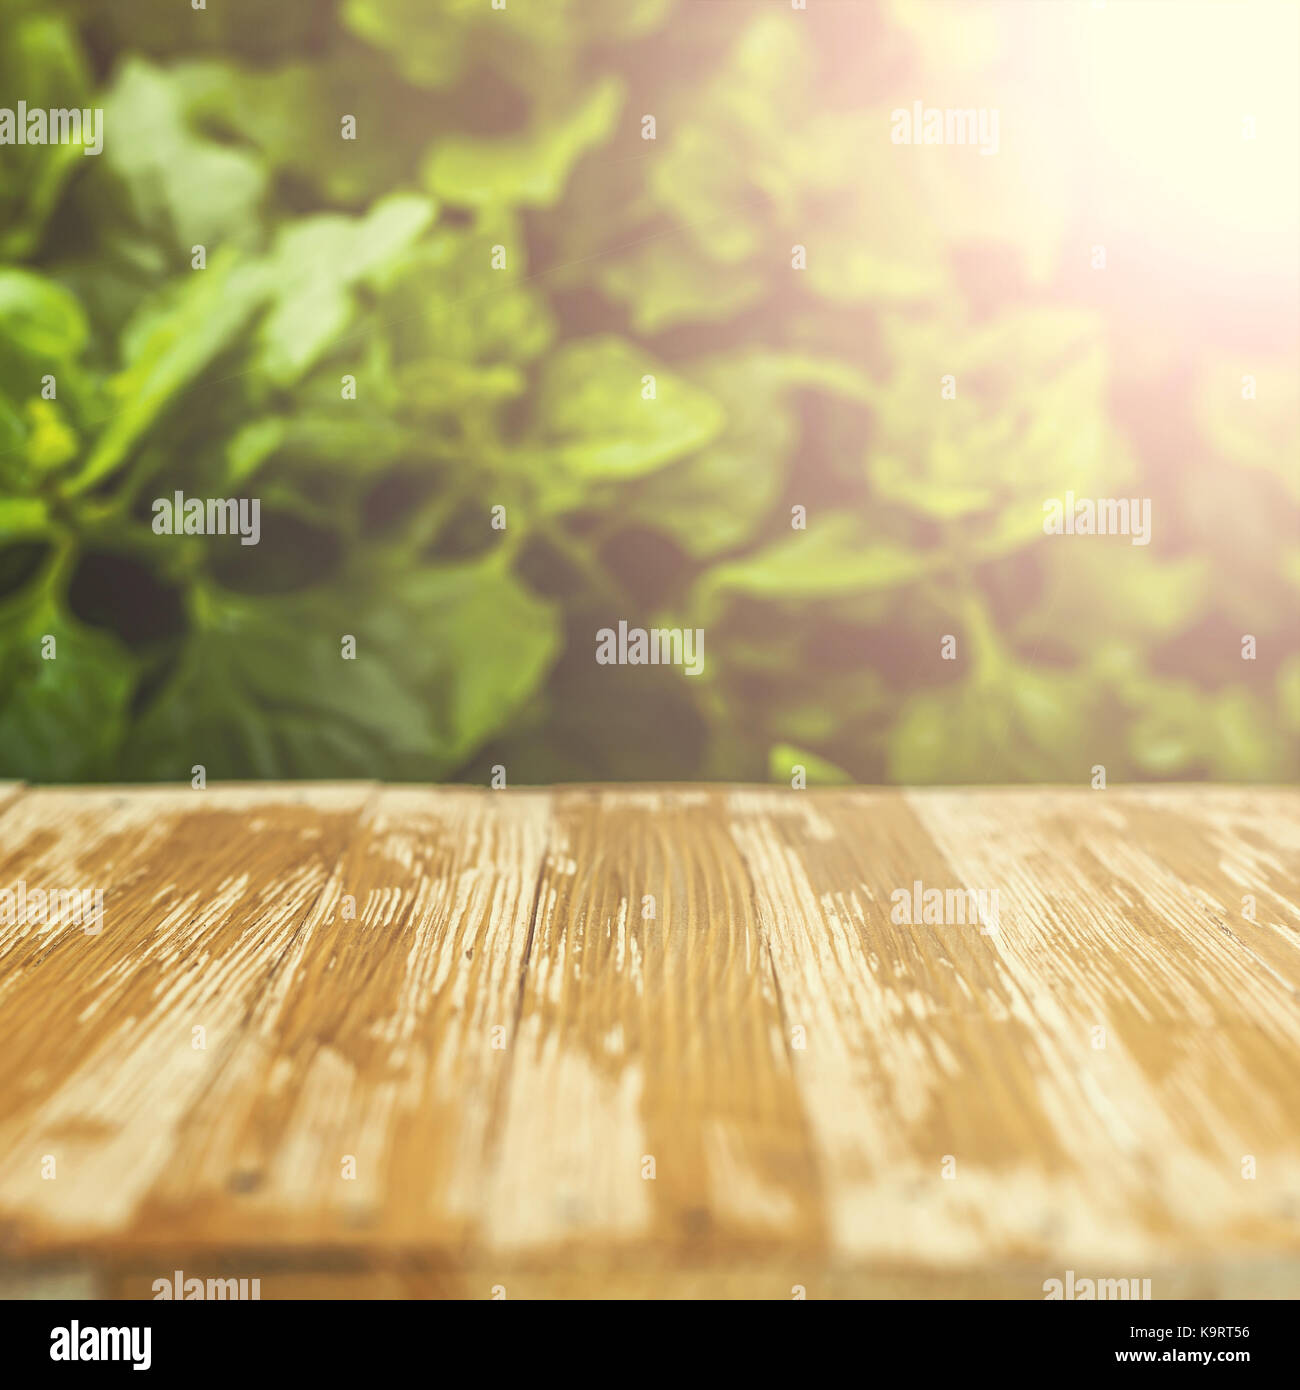 Empty Rustic Wood Table Top On Blurred Spinach In The Garden Background.  Can Montage Or Display Your Products.